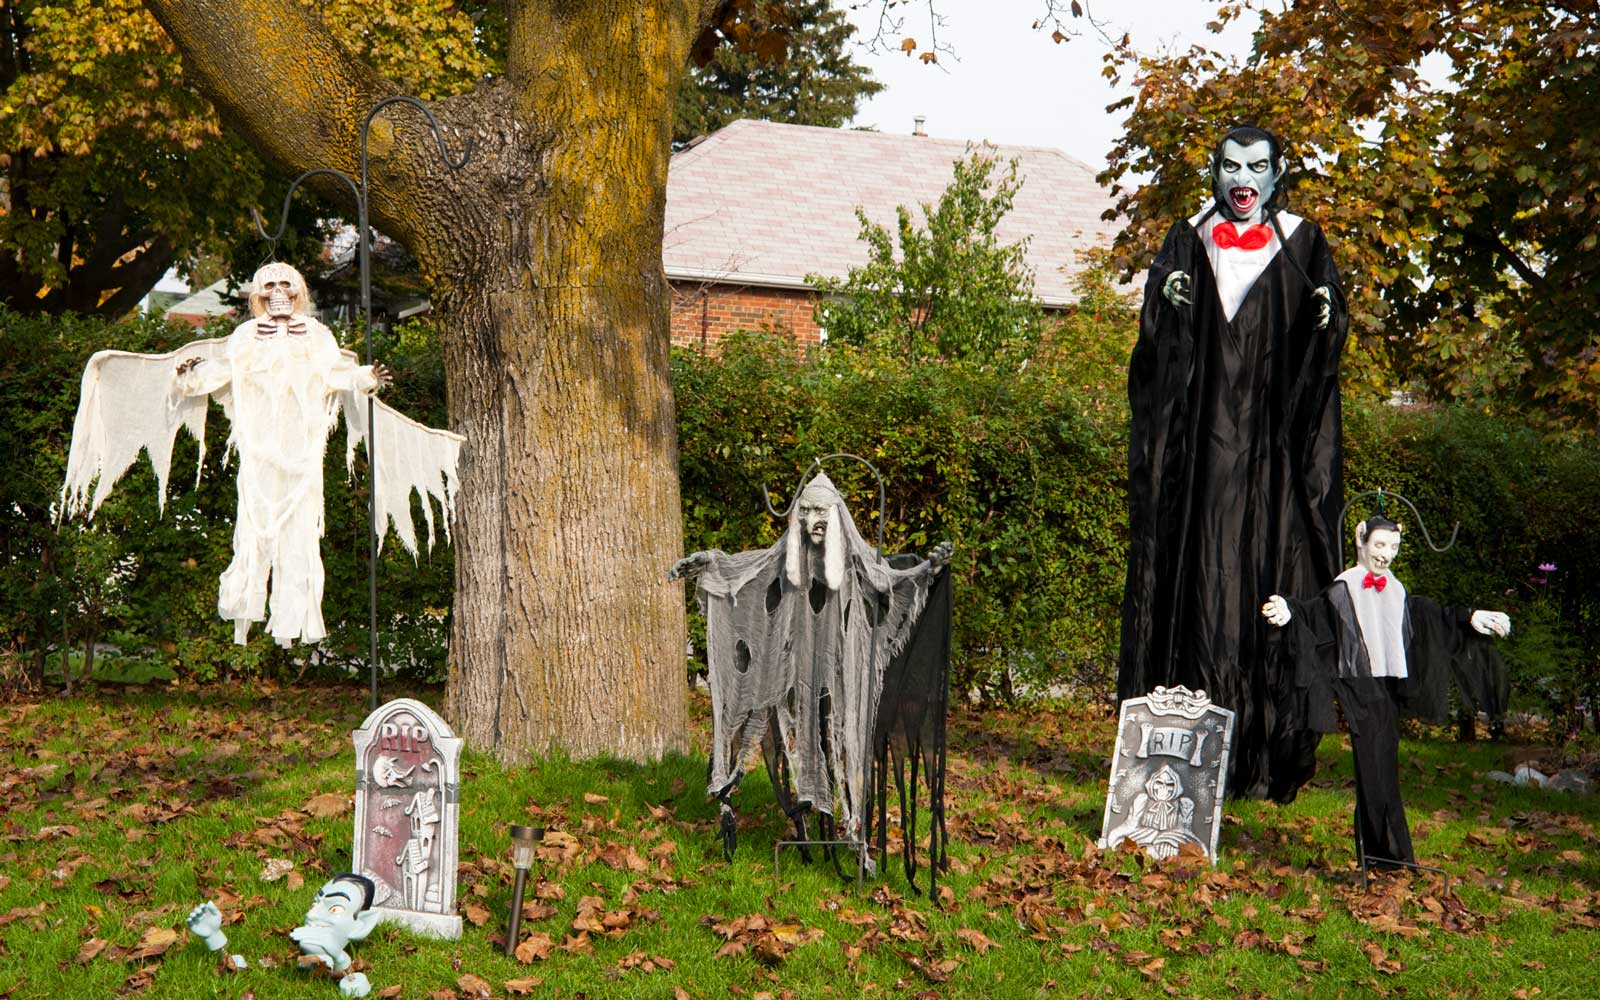 House Dressed Up For Halloween